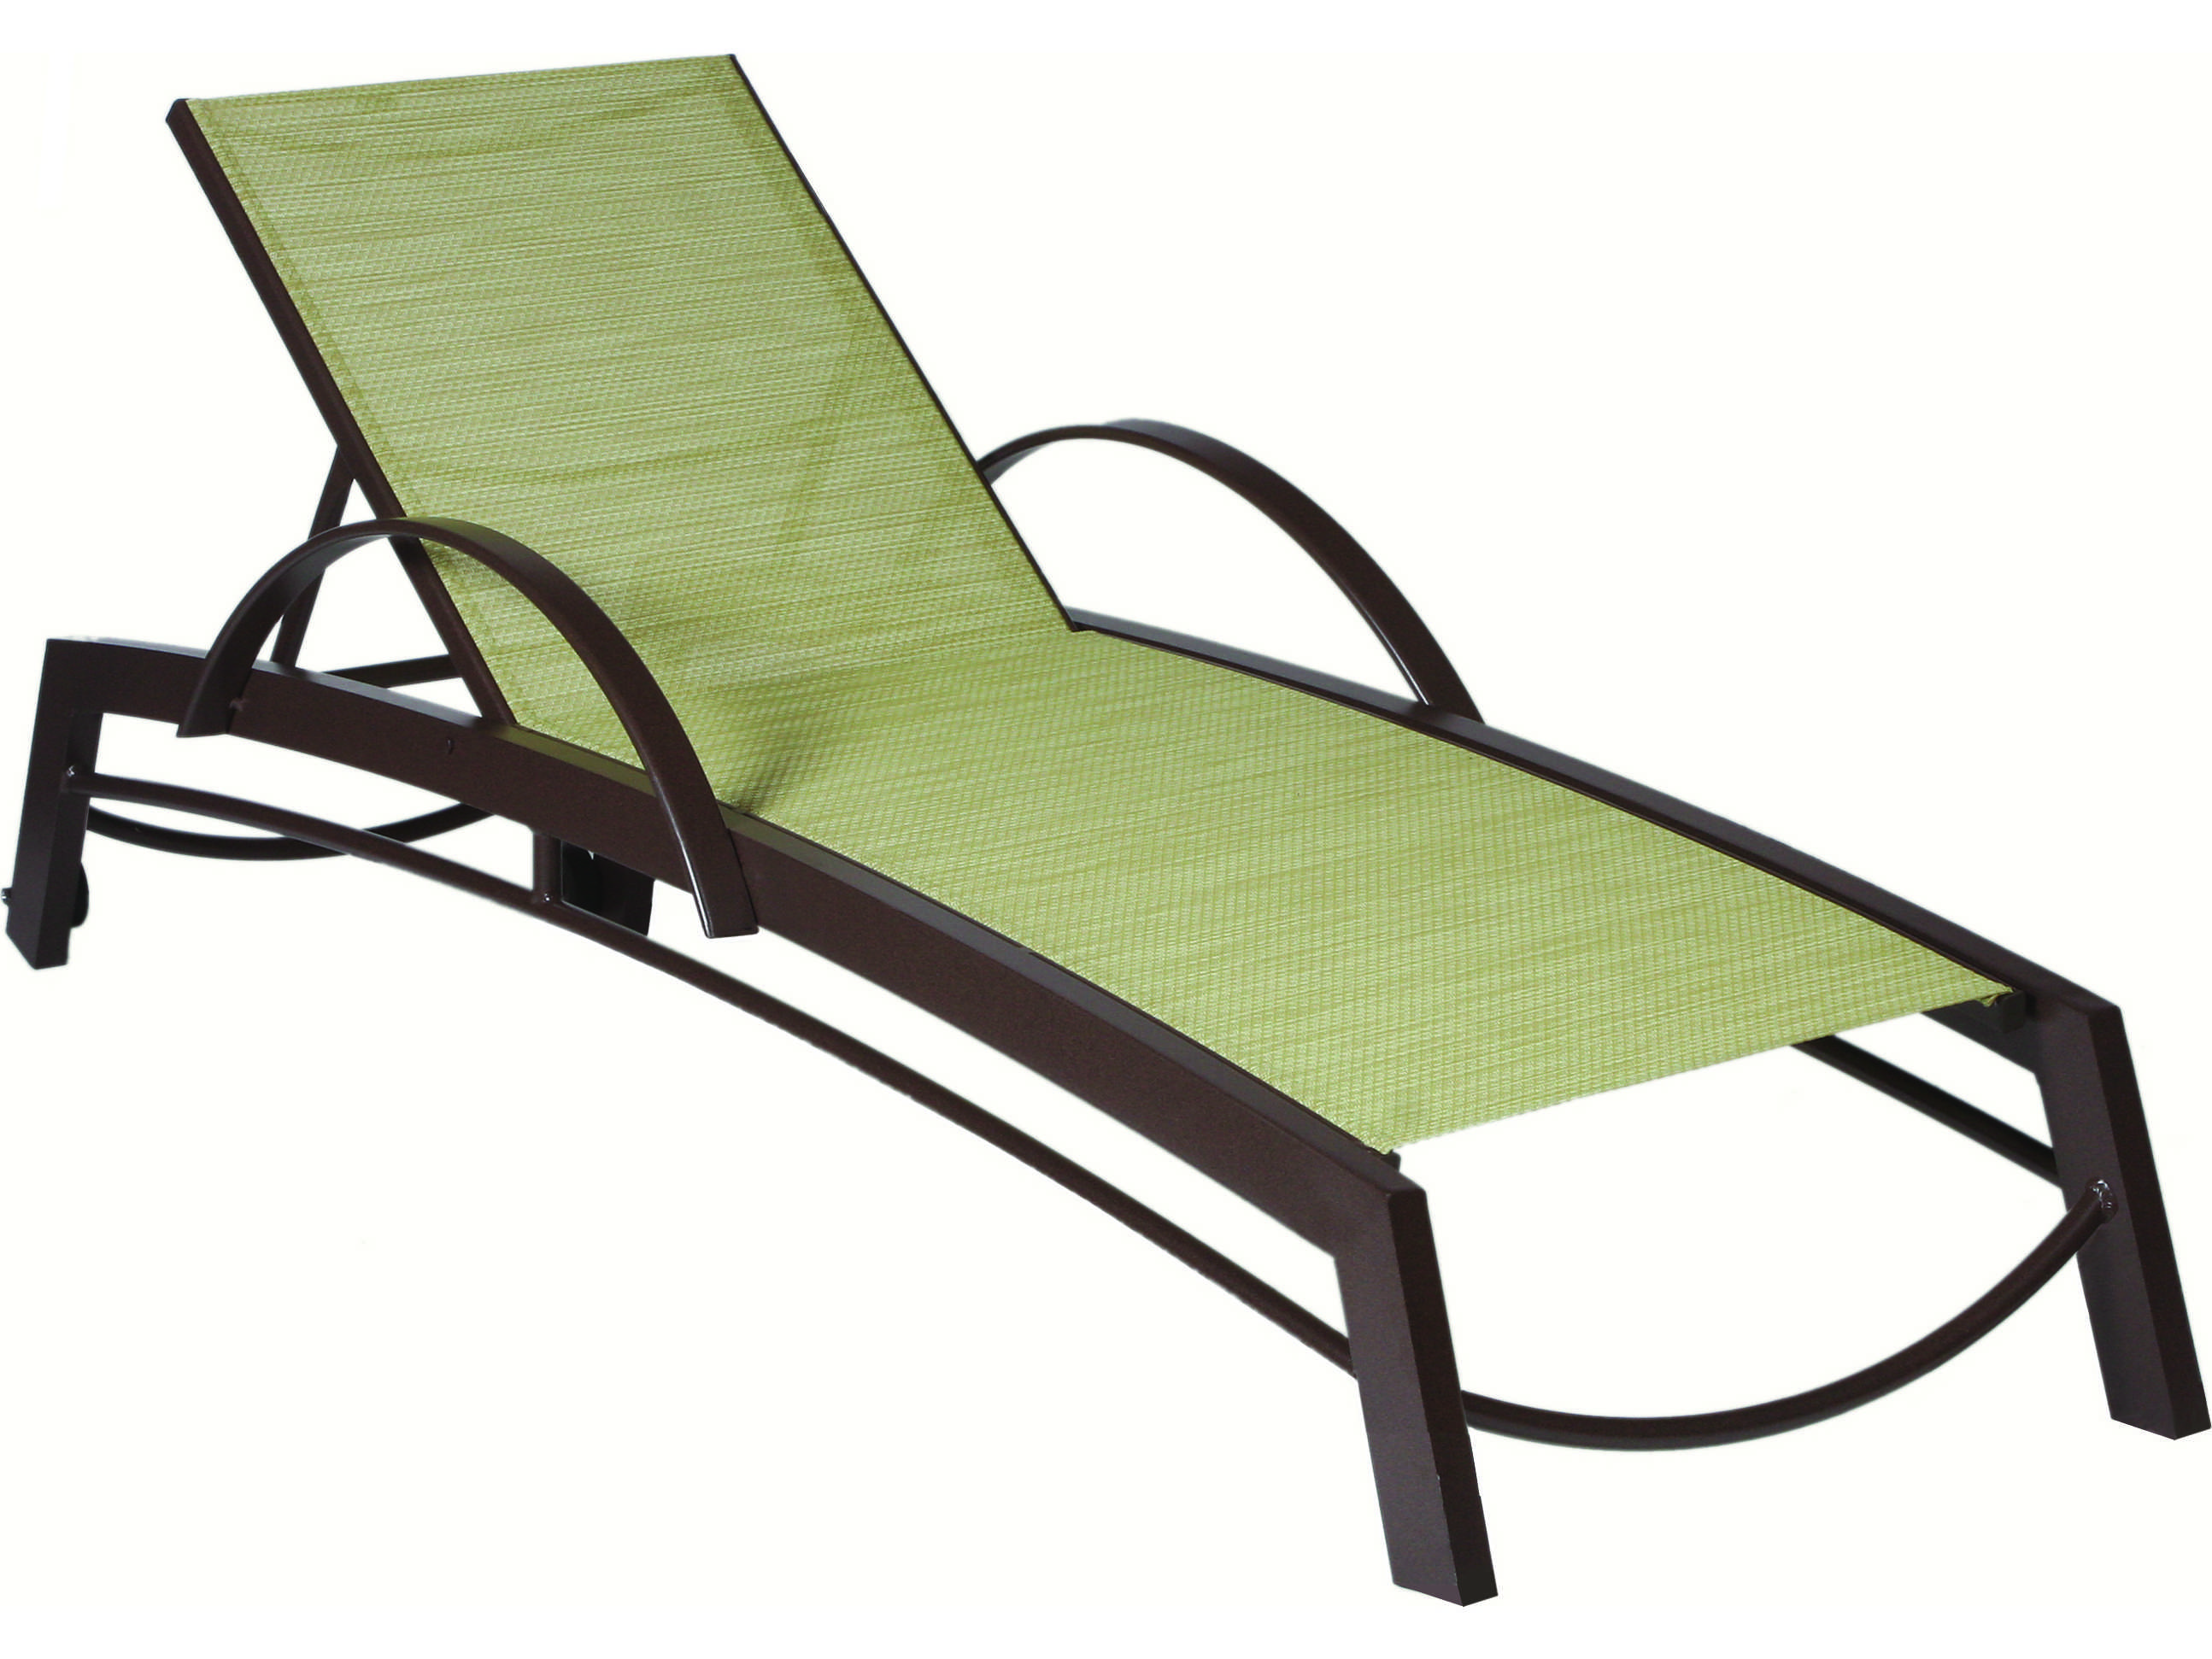 Suncoast Vectra Curv Sling Chaise Lounge With Wheels E593